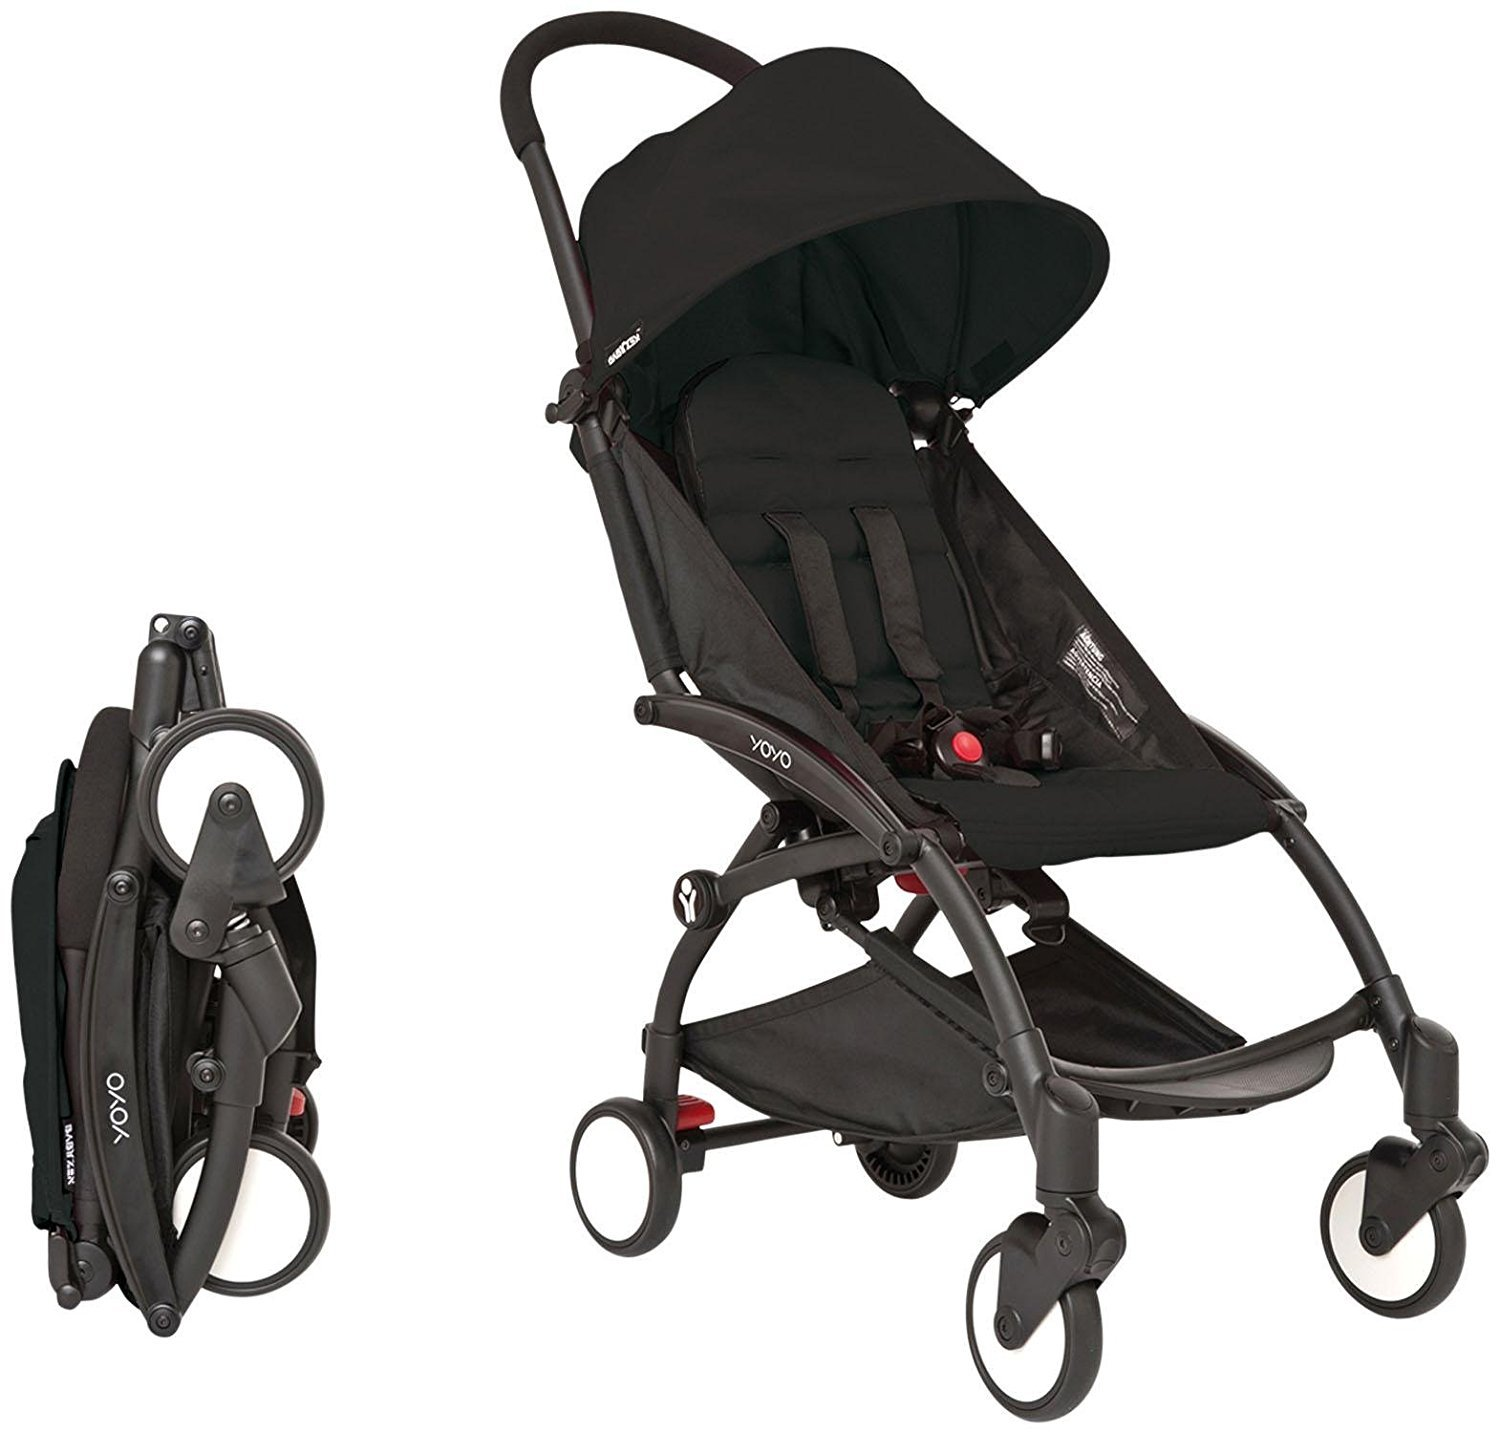 YOYA 2017 Stroller Color Black - Easy to fold - Extremely lightweight